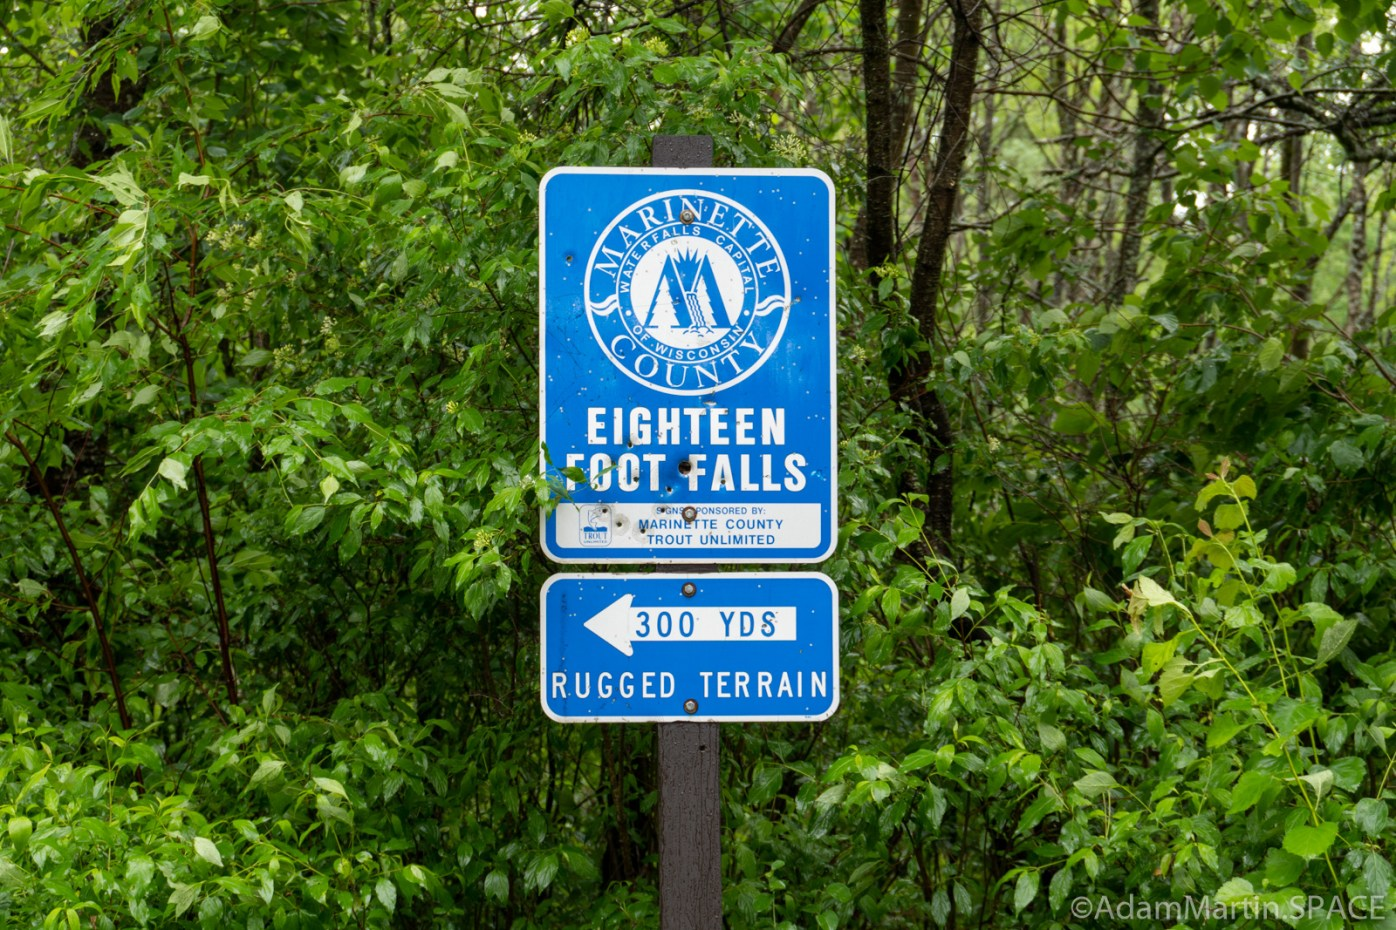 Eighteen Foot Falls - Trail sign